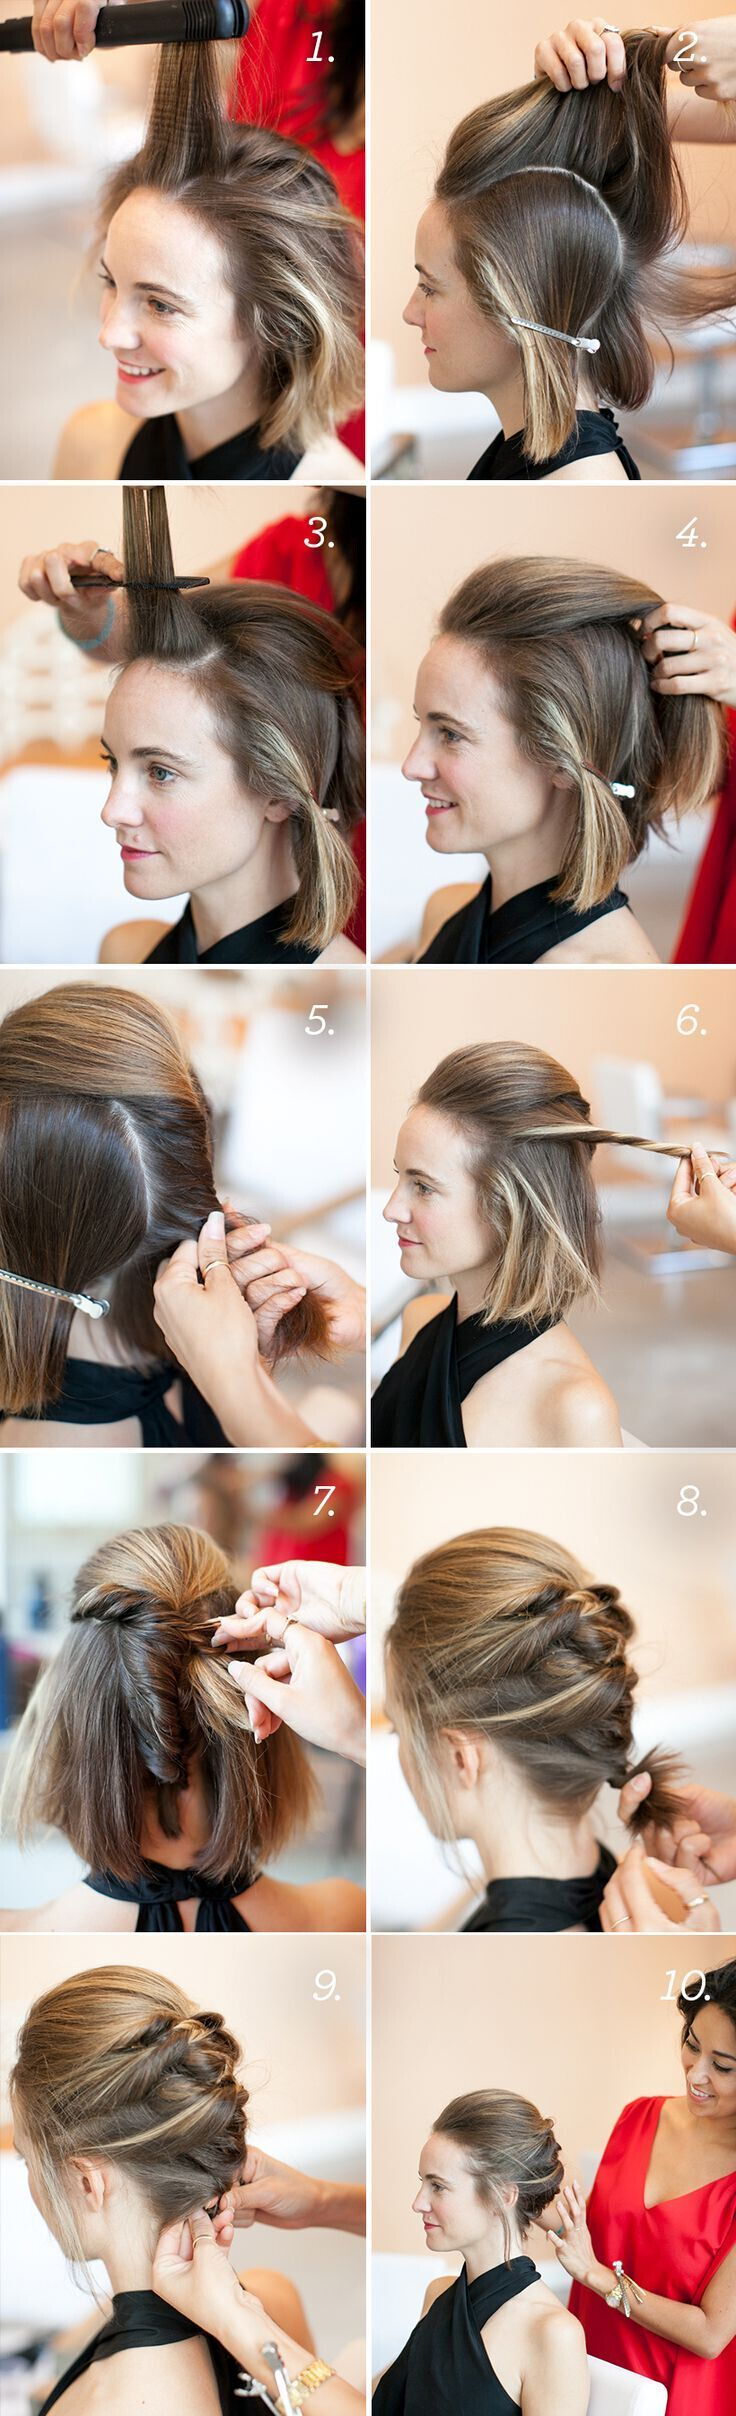 Superb Simple Braided Updos For Short Hair Braids Hairstyle Inspiration Daily Dogsangcom